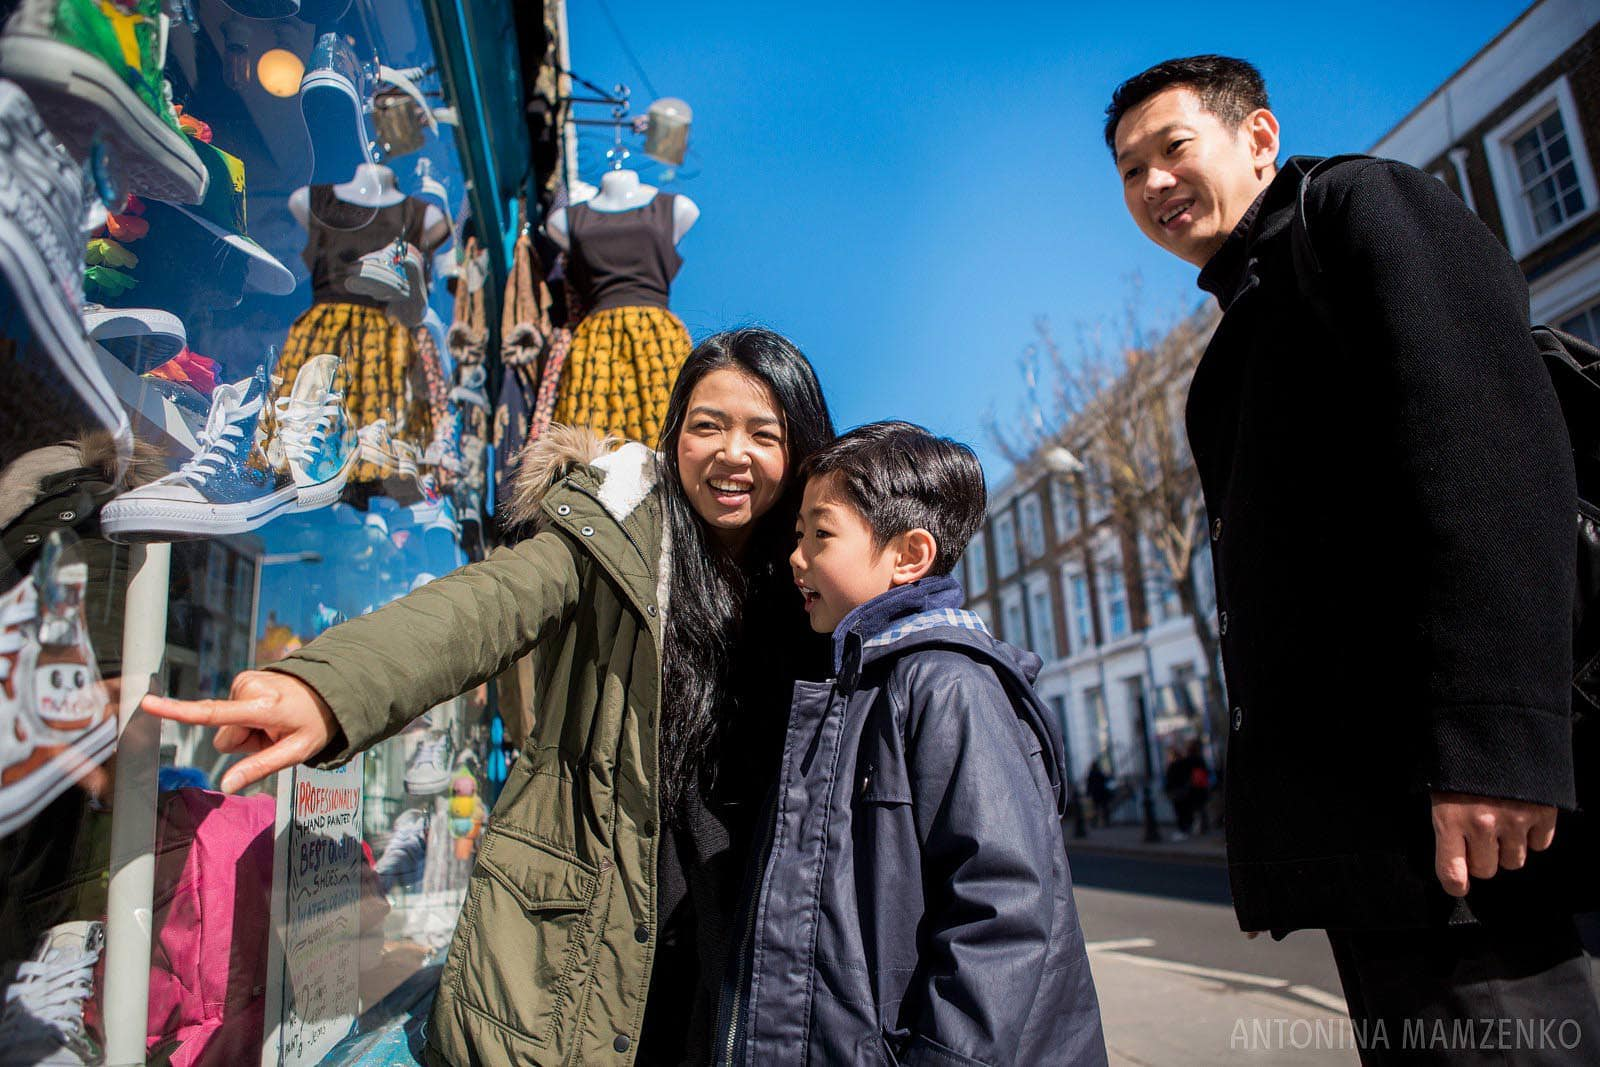 a family checking out Portobello Road shops in Notting Hill during their family photoshoot